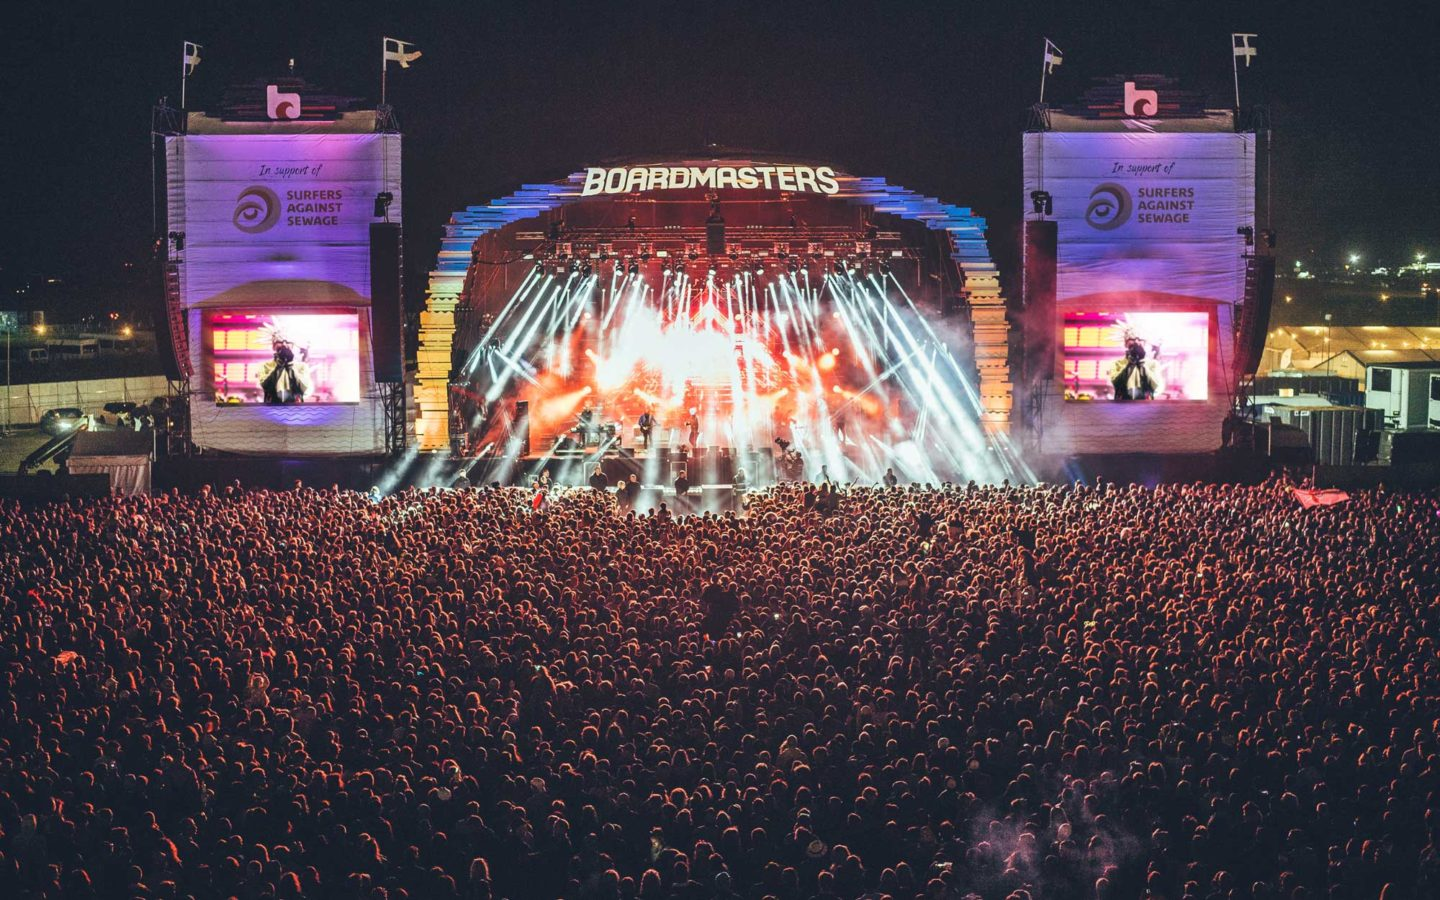 boardmasters-stage-newquay-cornwall-uk